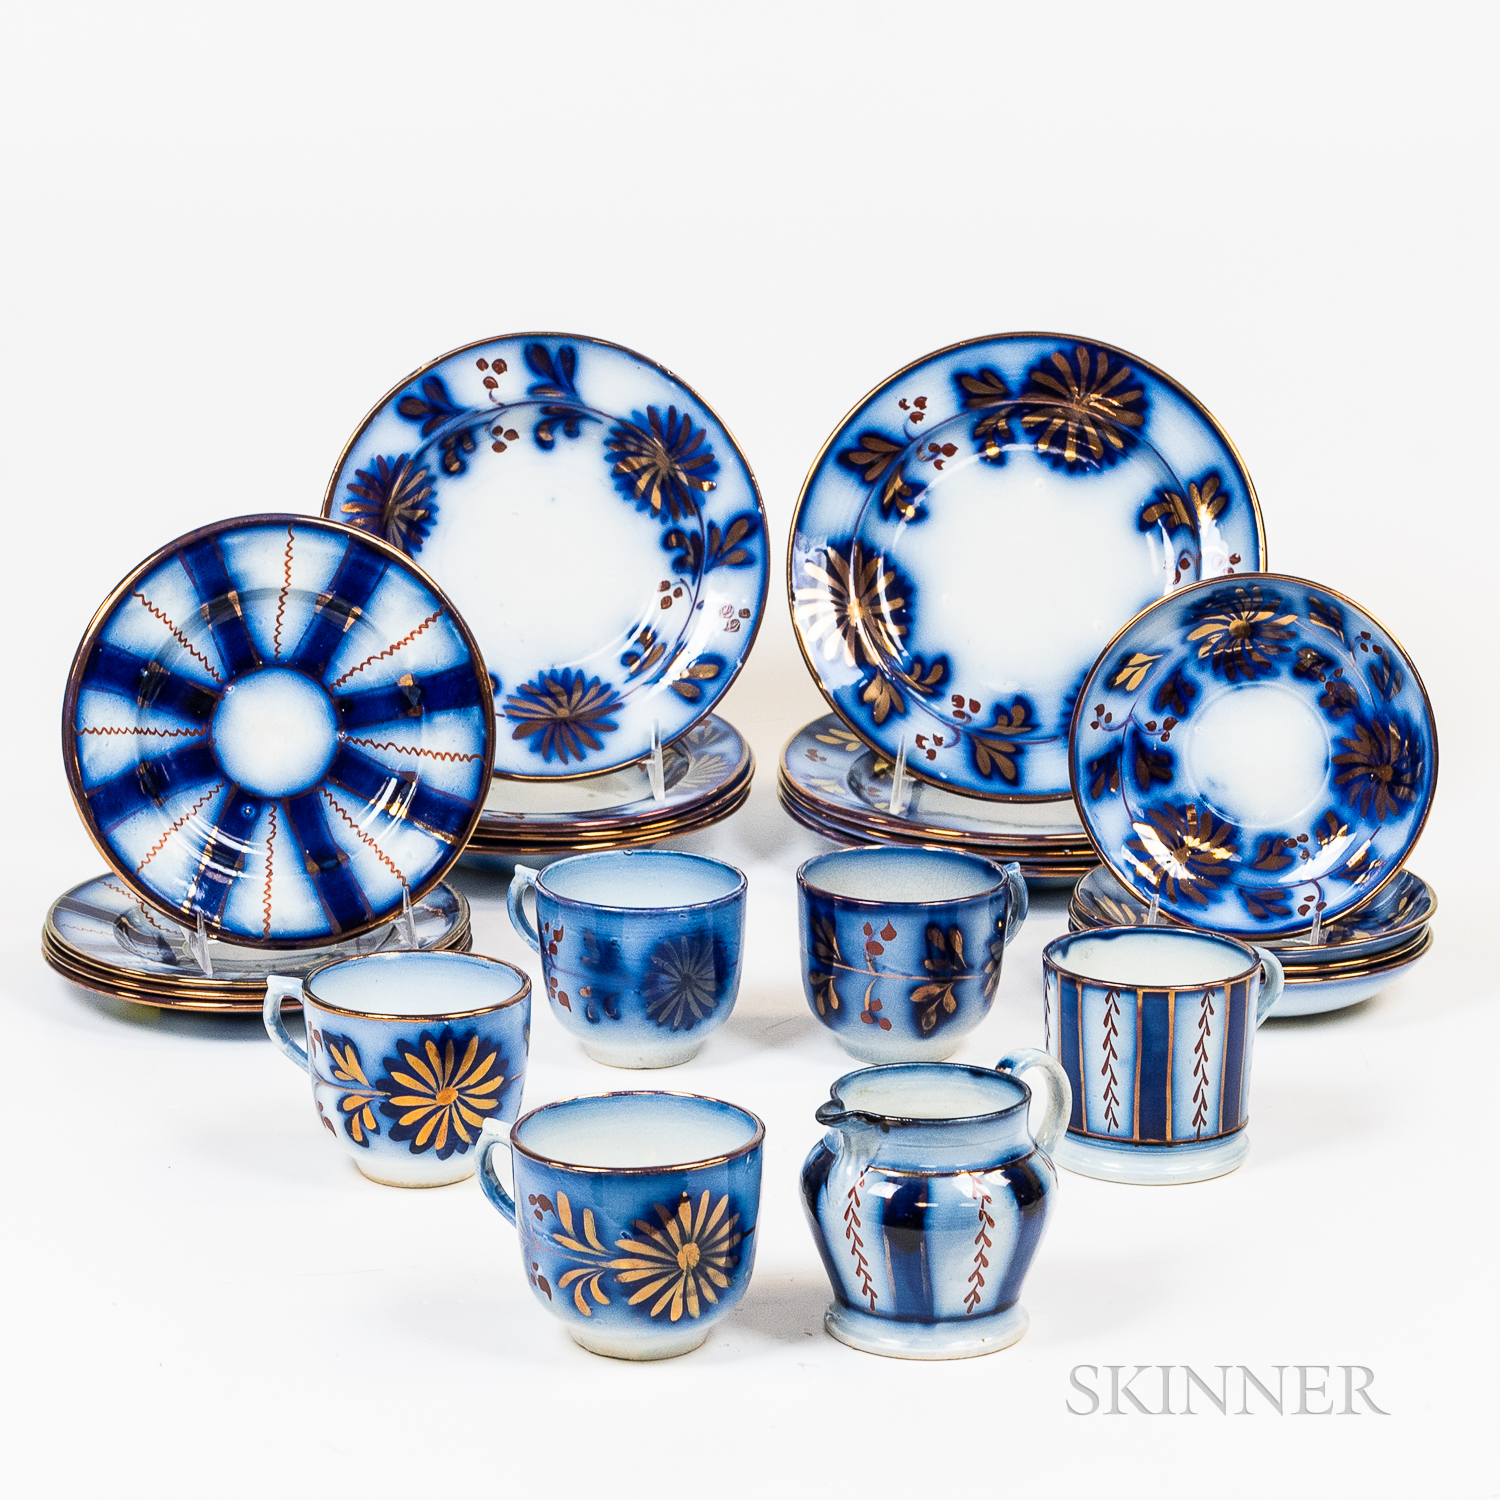 Group of Flow Blue Tableware with Copper Lustre Details